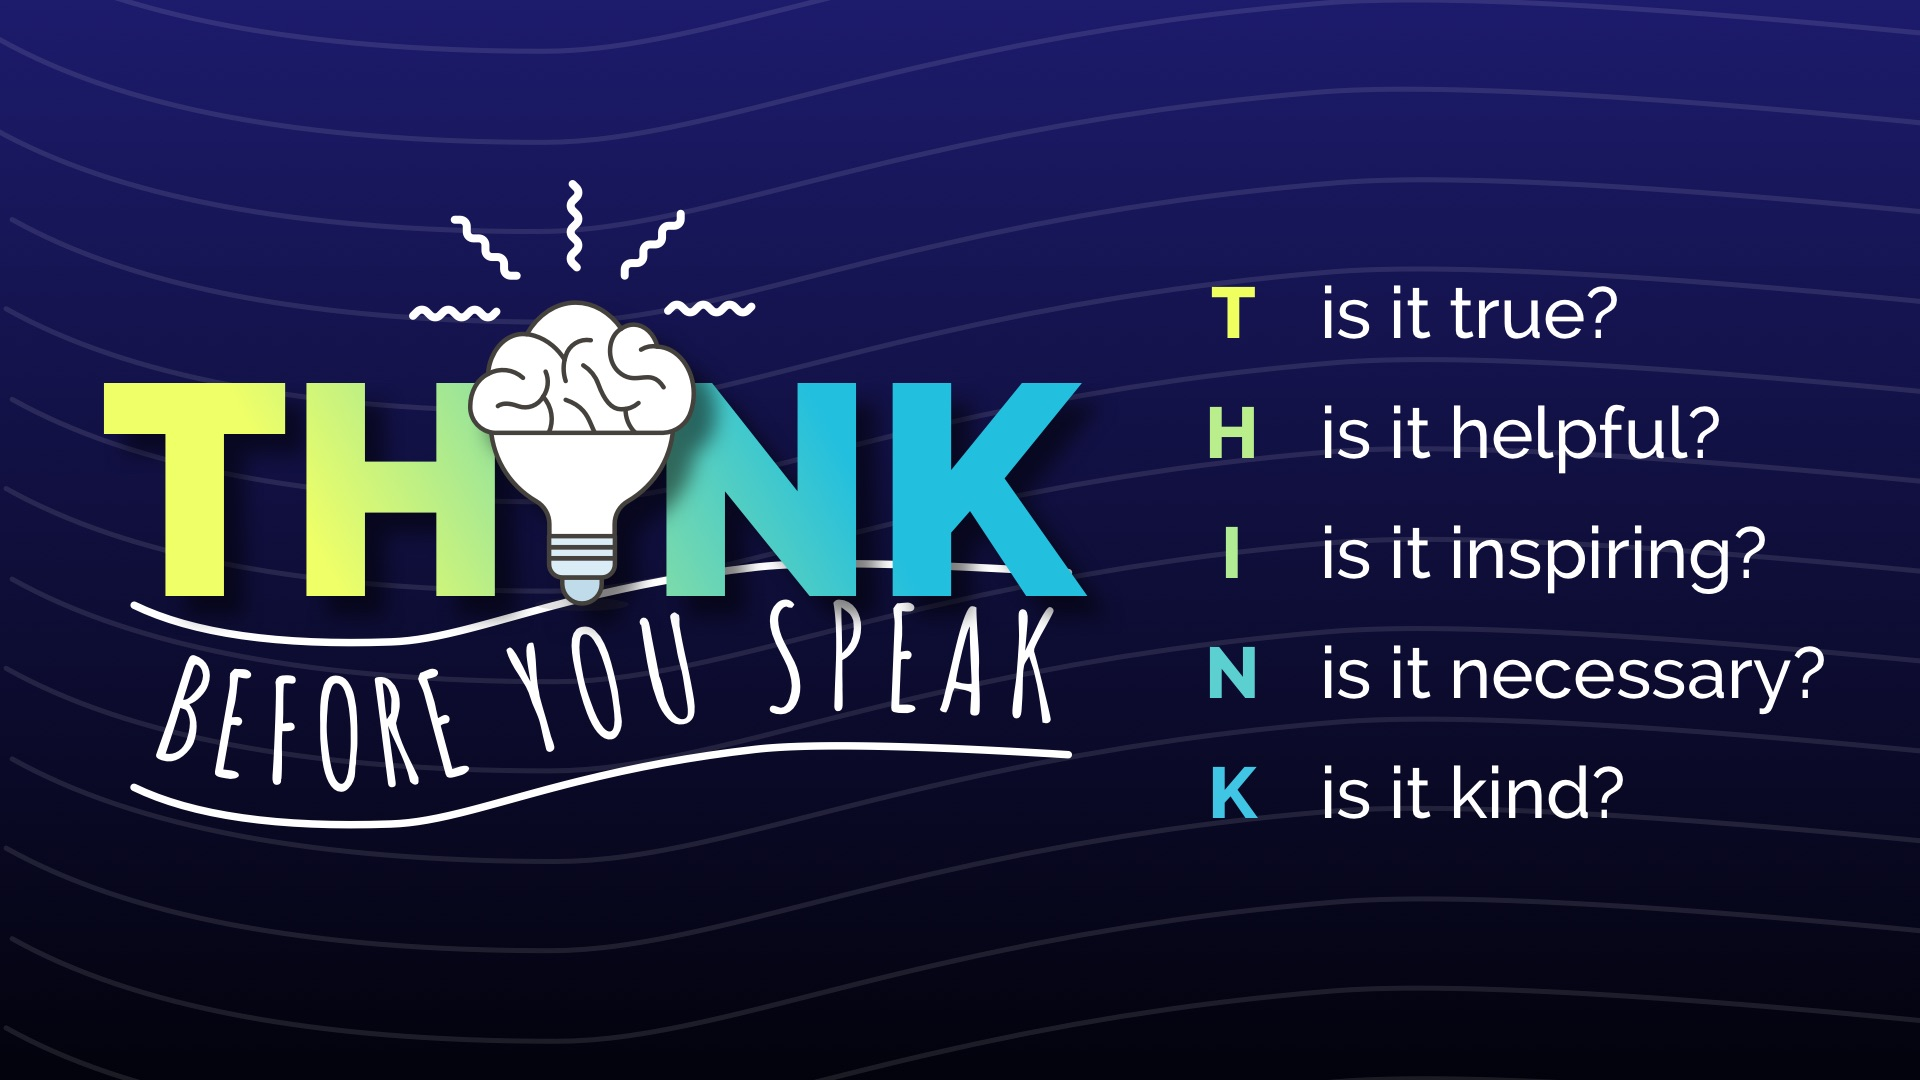 anti-bullying poster-think-before-you-speak